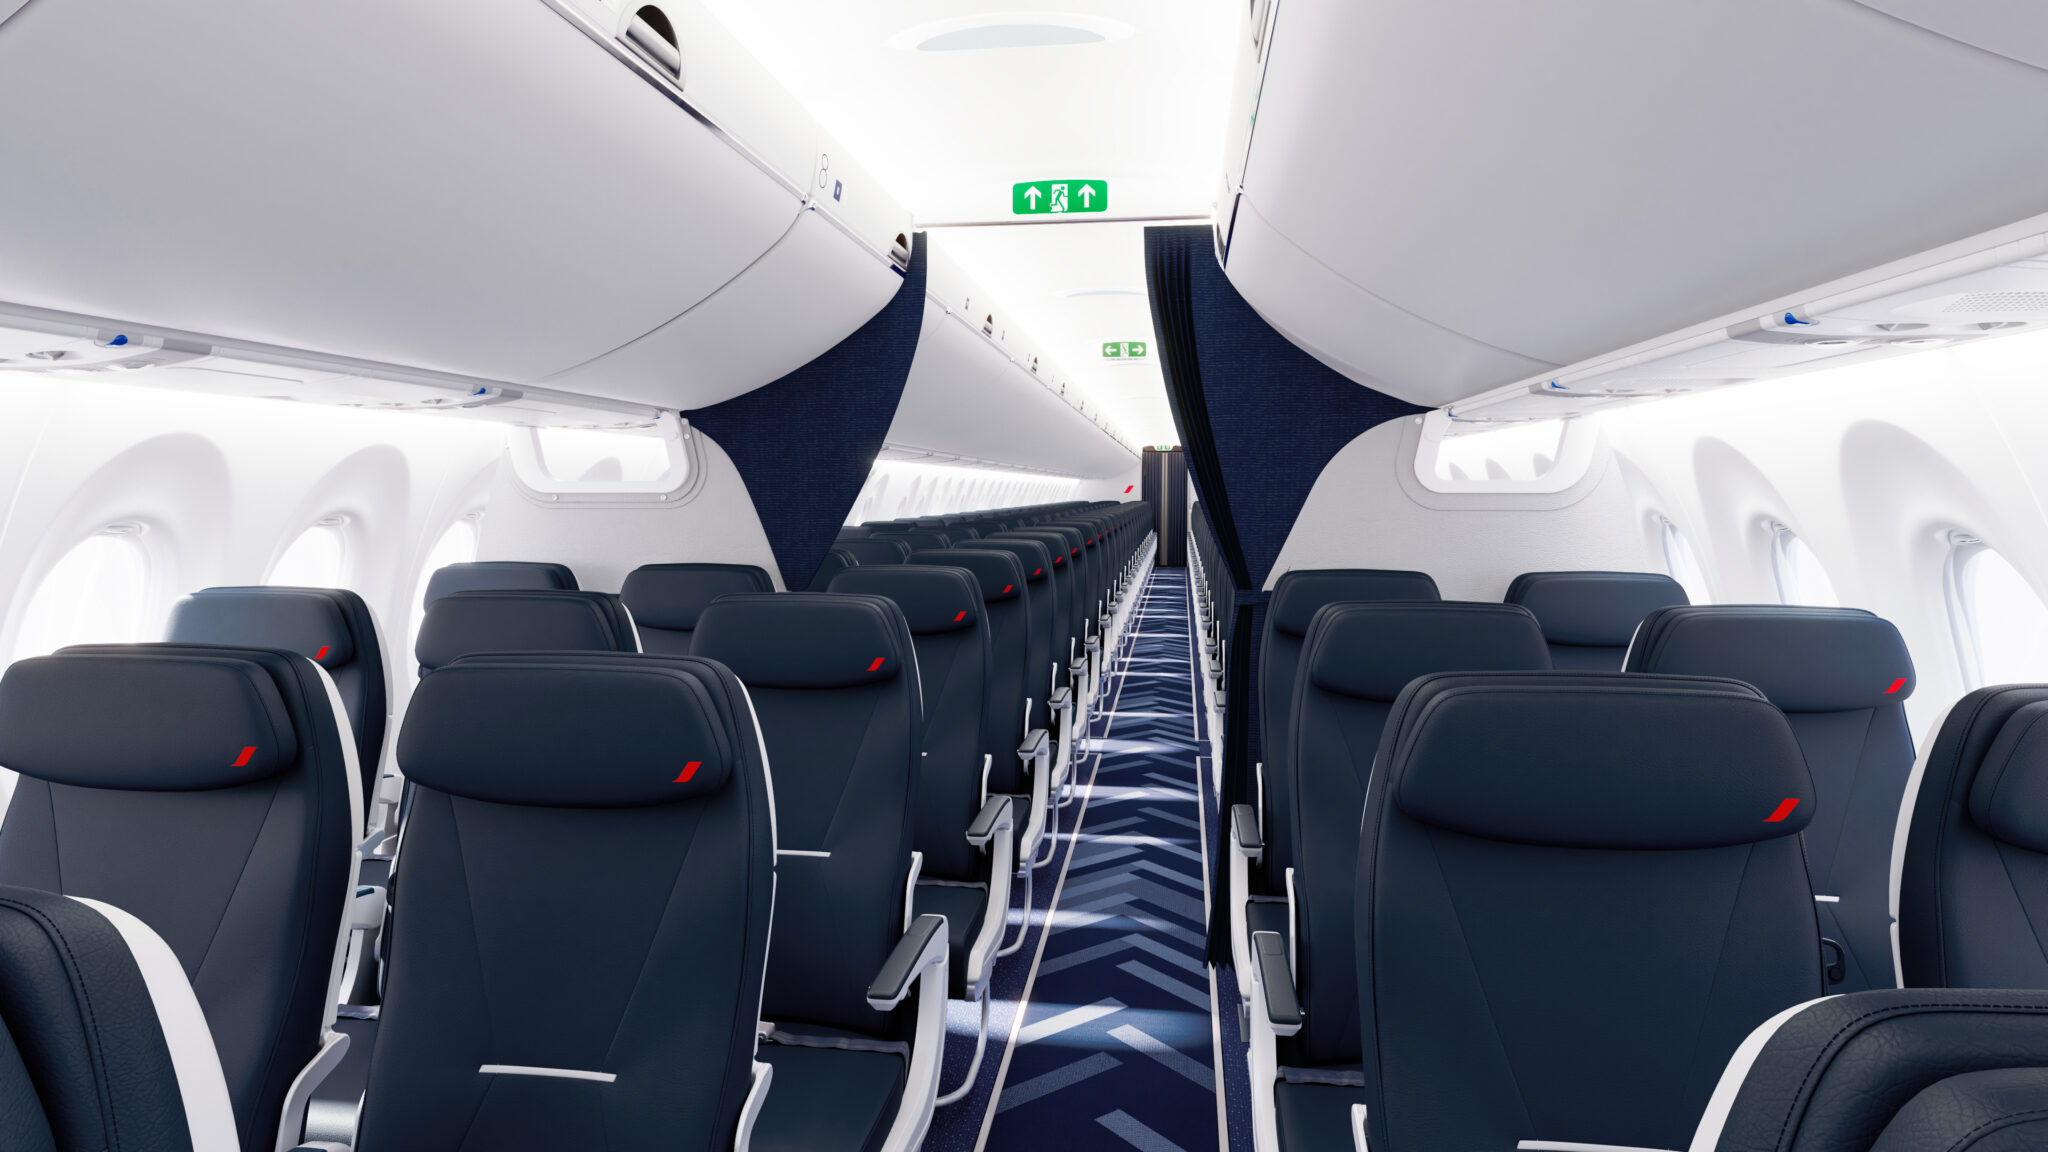 A220-300 Air France cabin, dark grey seats with red accent in 3-2 config